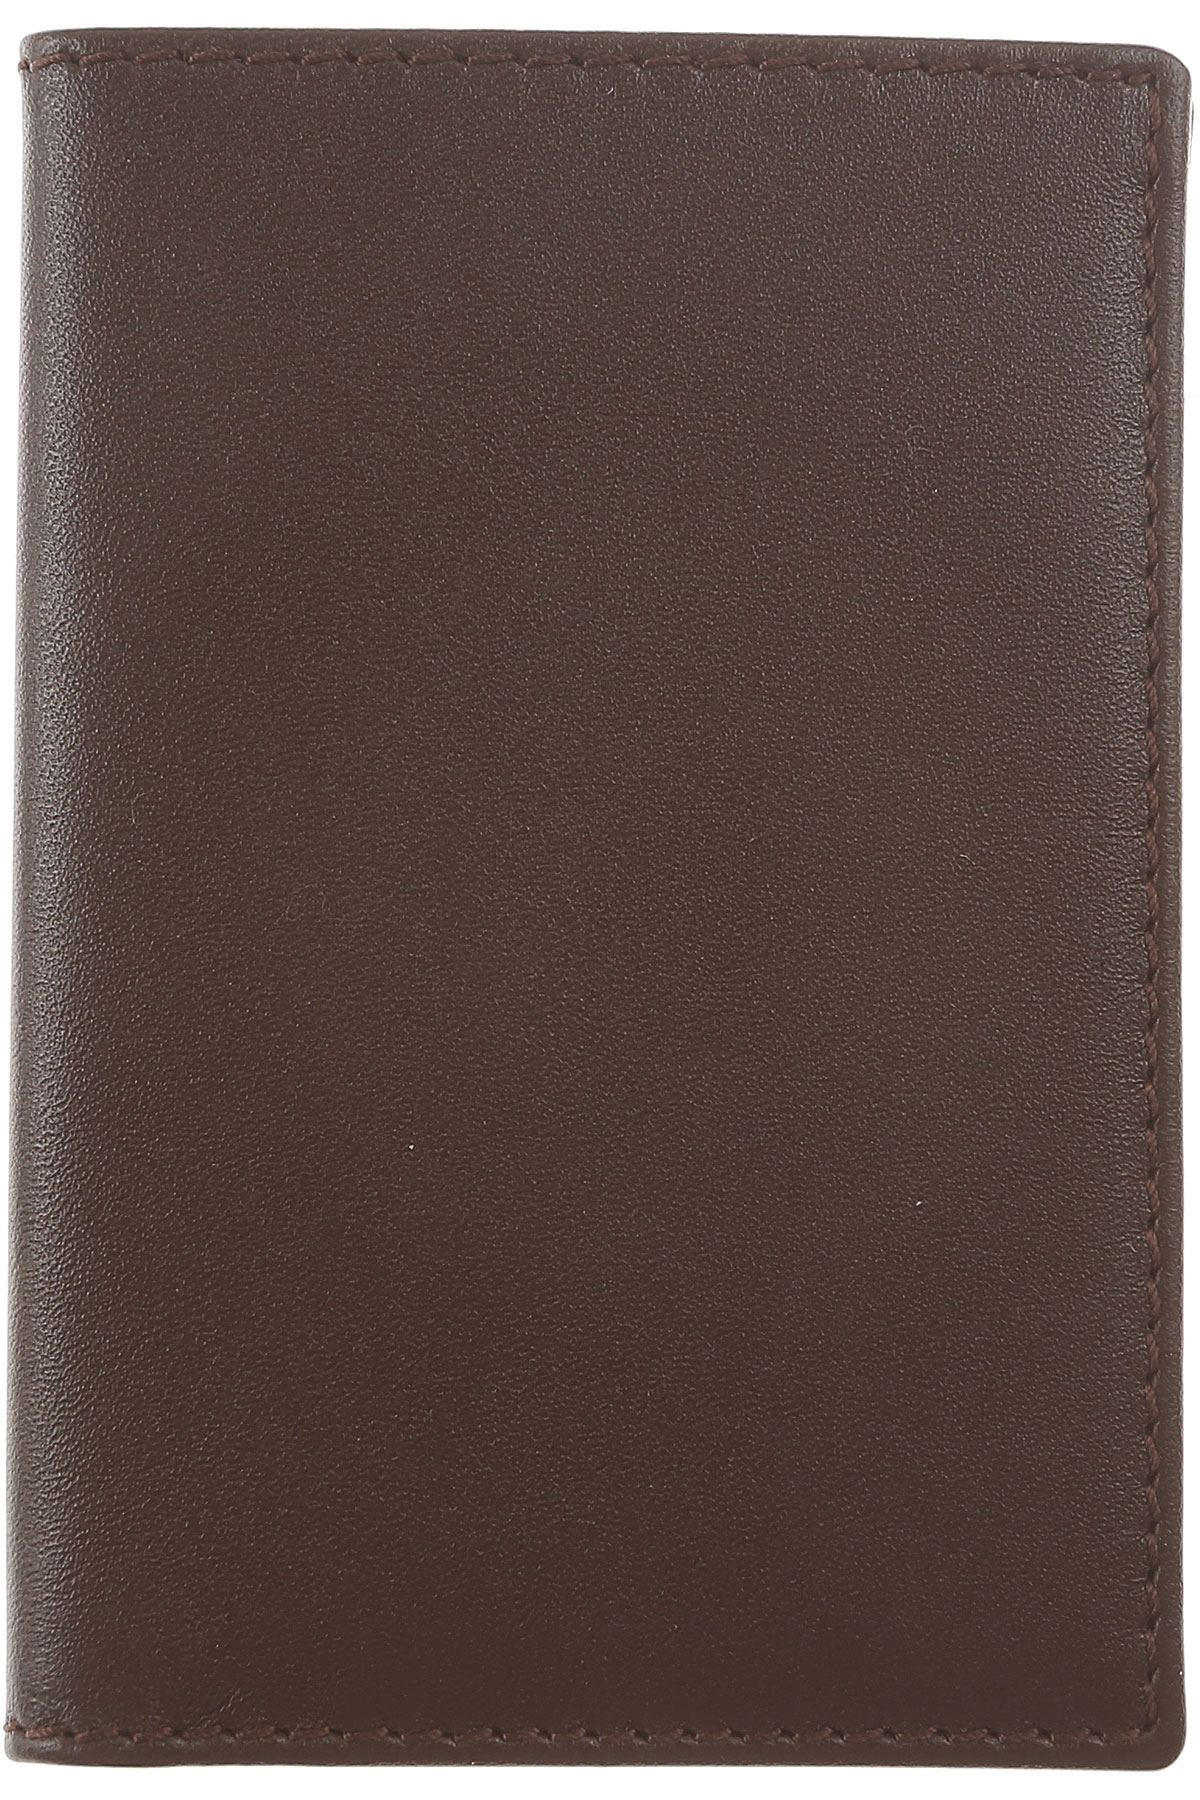 Image of Comme des Garcons Card Holder for Men, Brown coffee, Leather, 2017